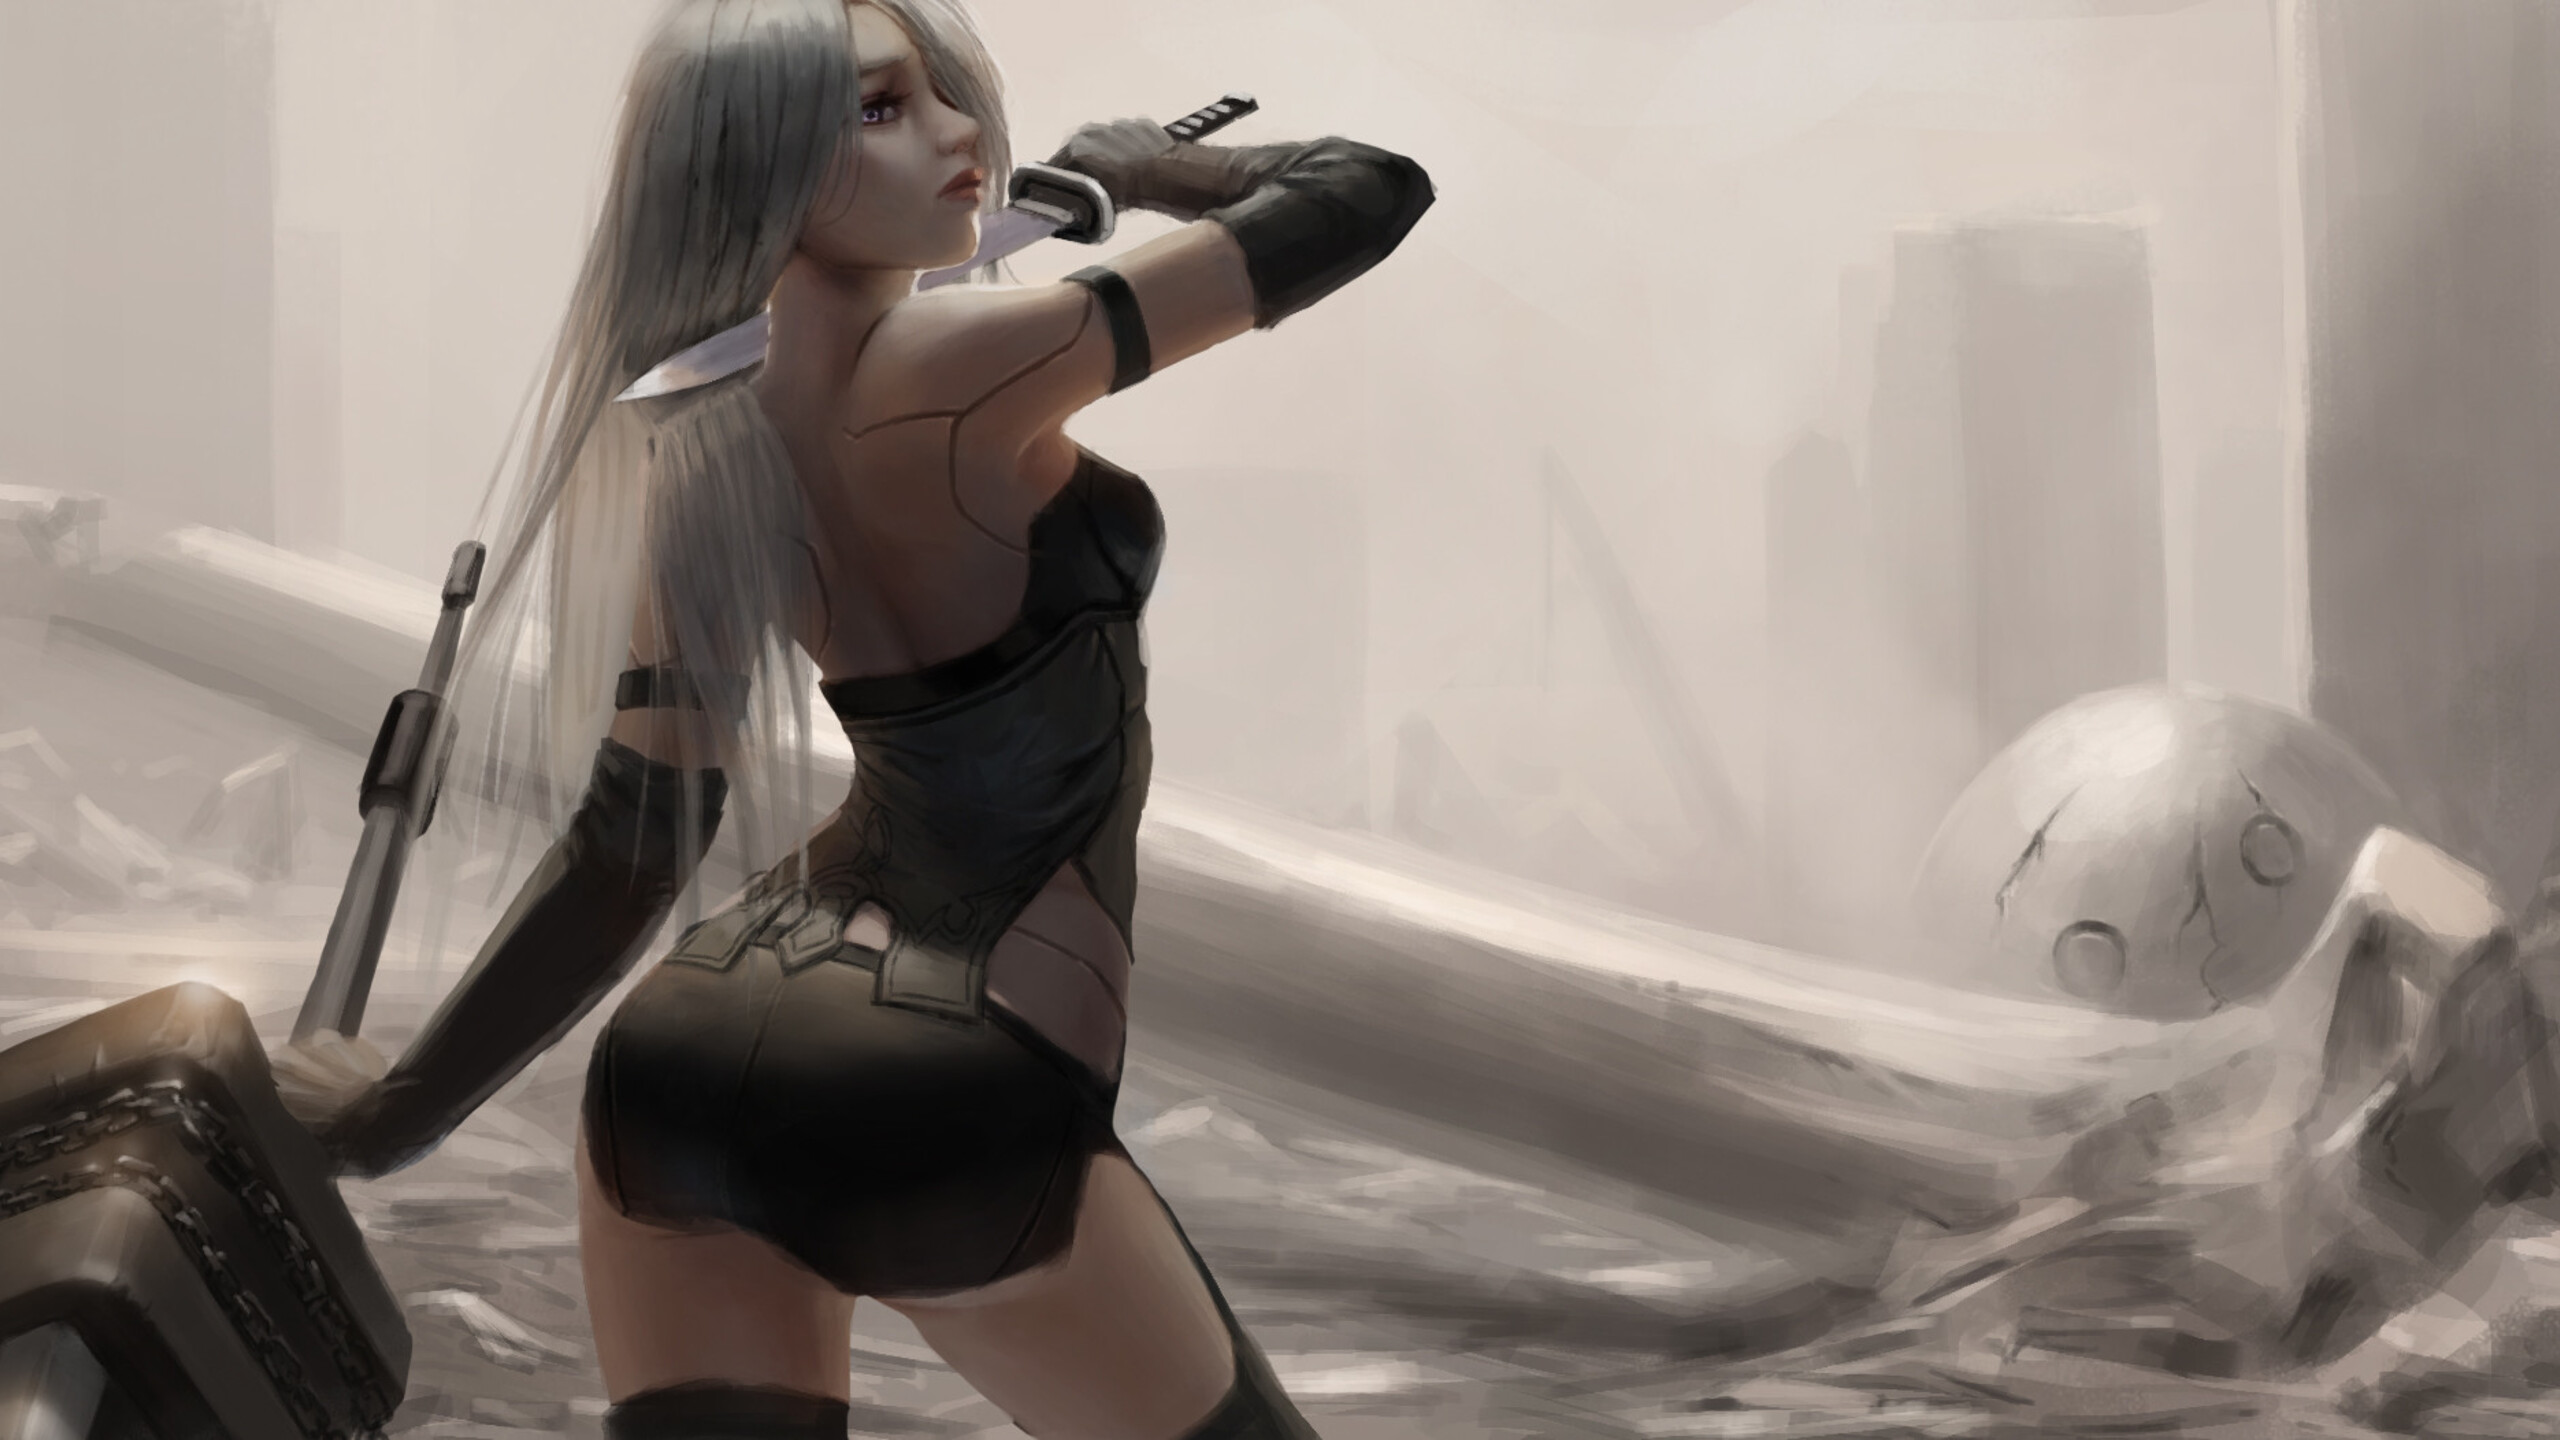 Nier Automata Fantasy Game Art Full Hd Wallpaper: 2560x1440 Nier Automata Fan Art 1440P Resolution HD 4k